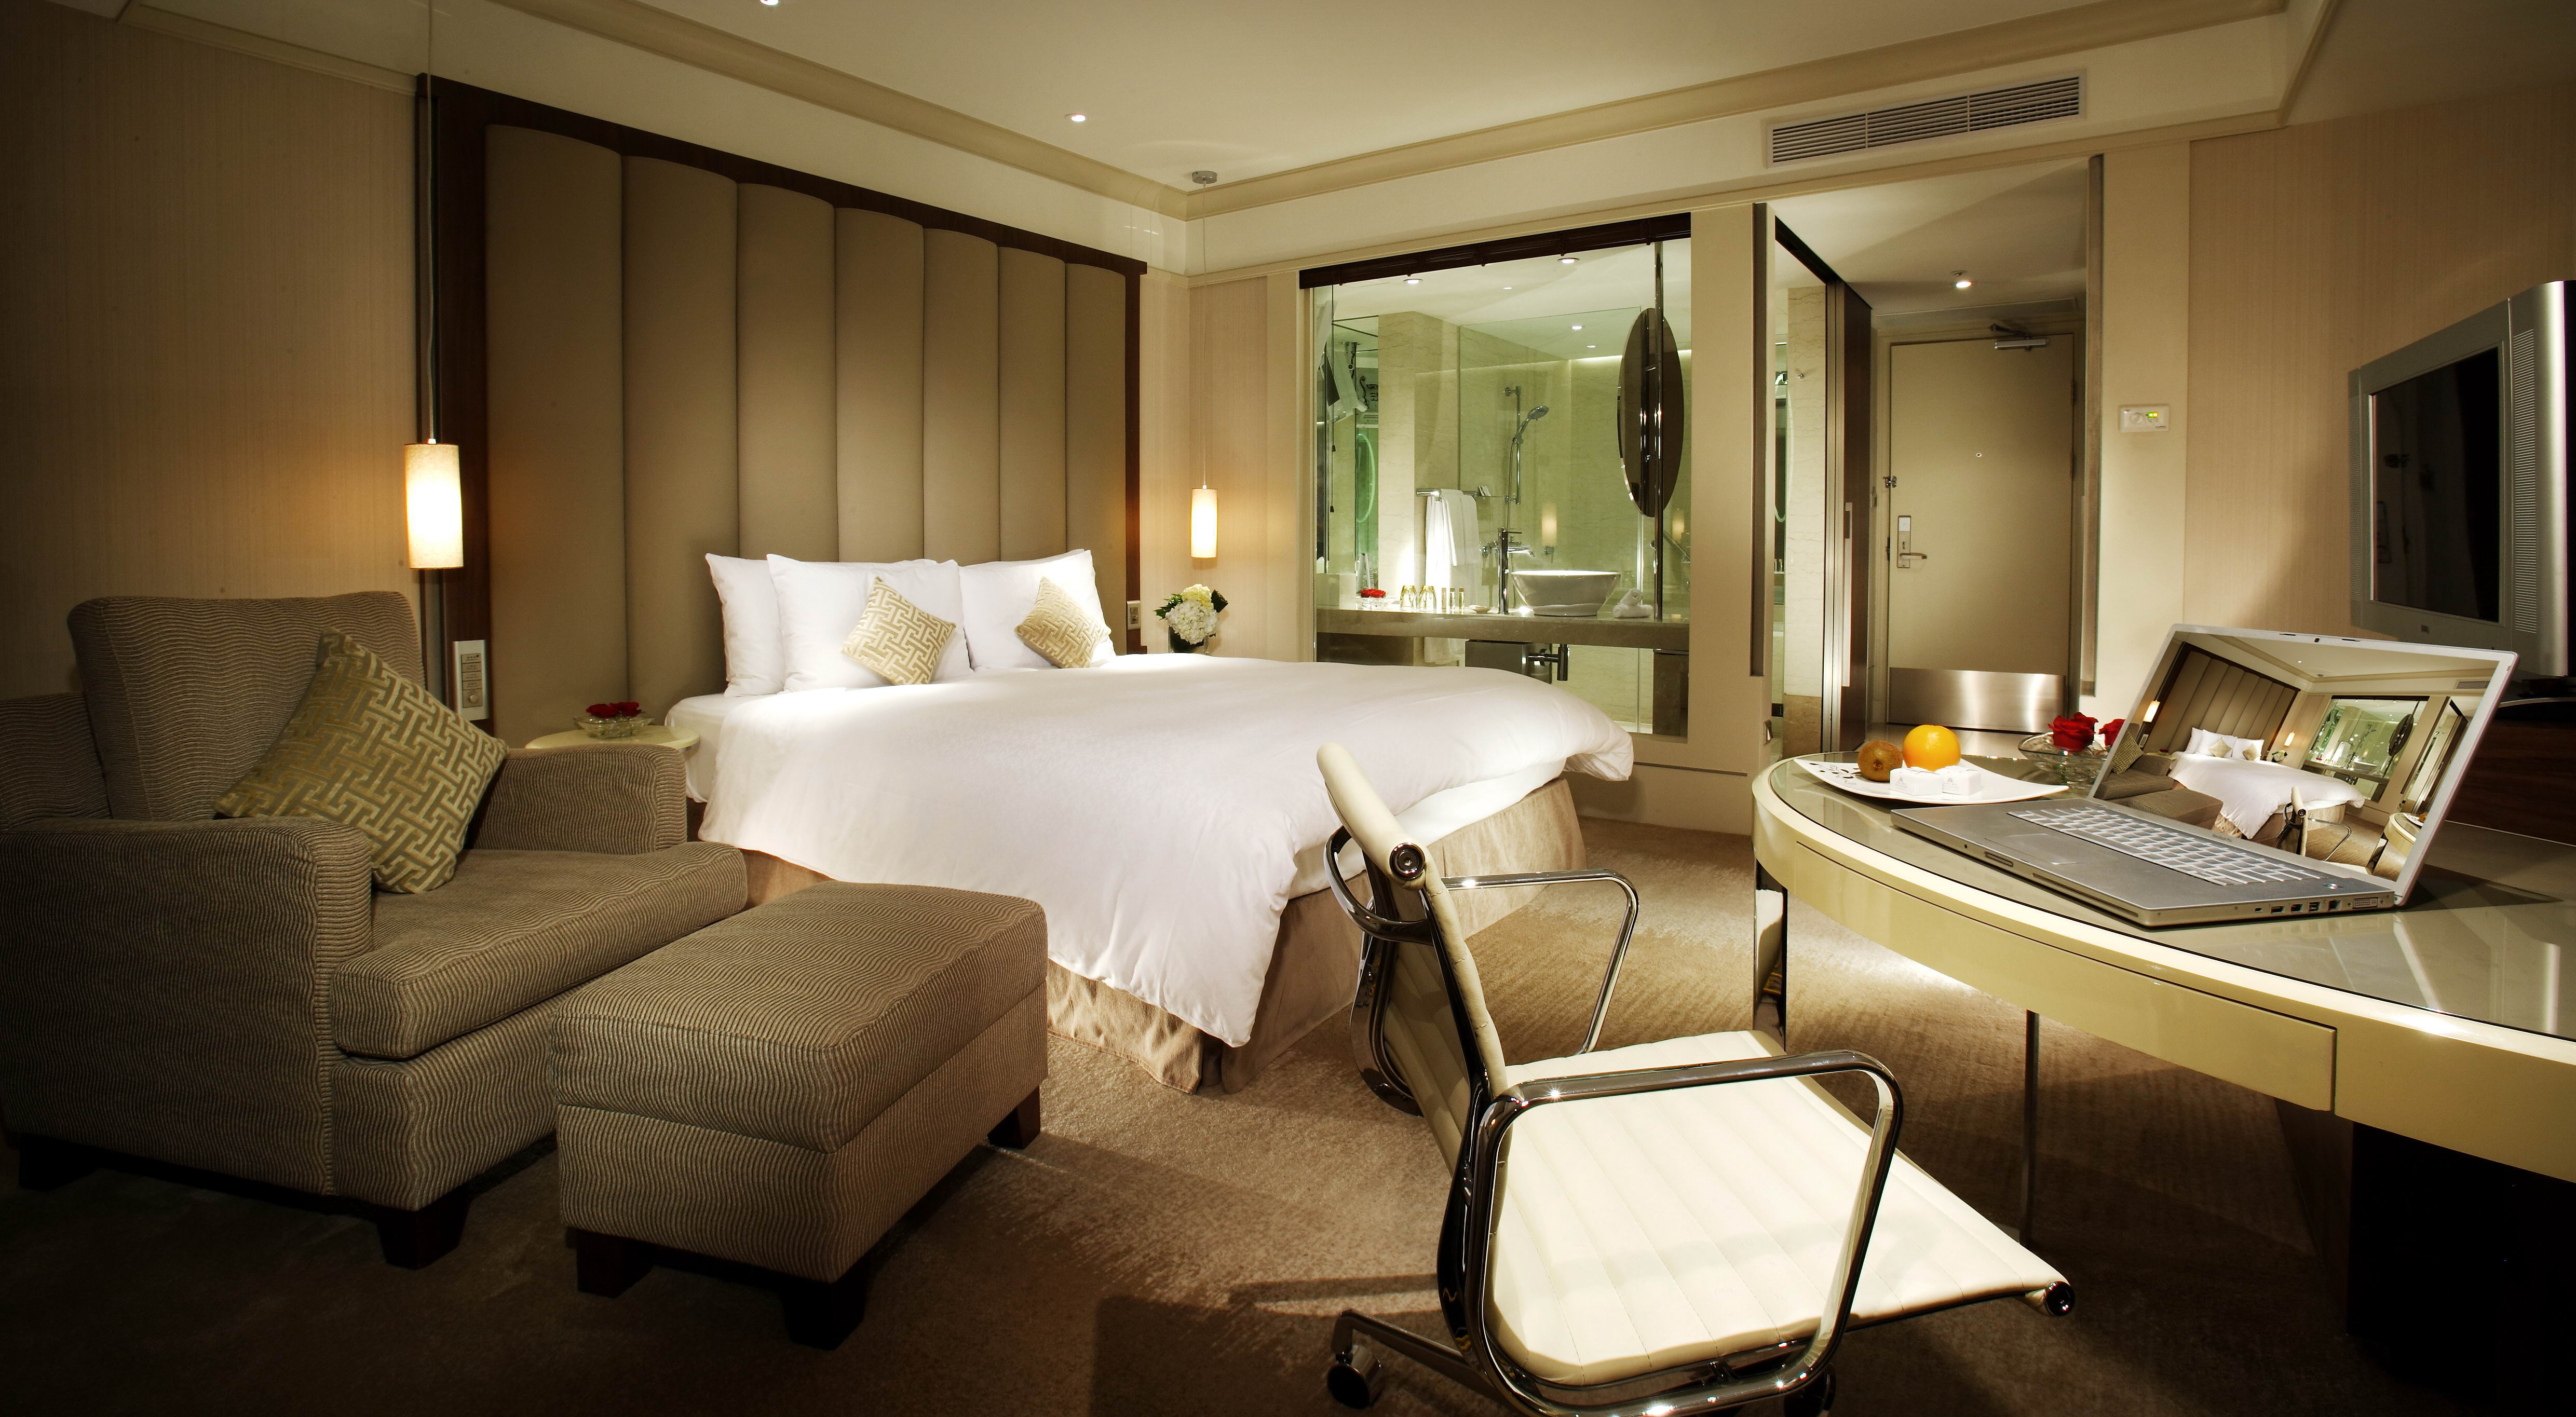 Hotel Royal Taipei proposes Long Stay project